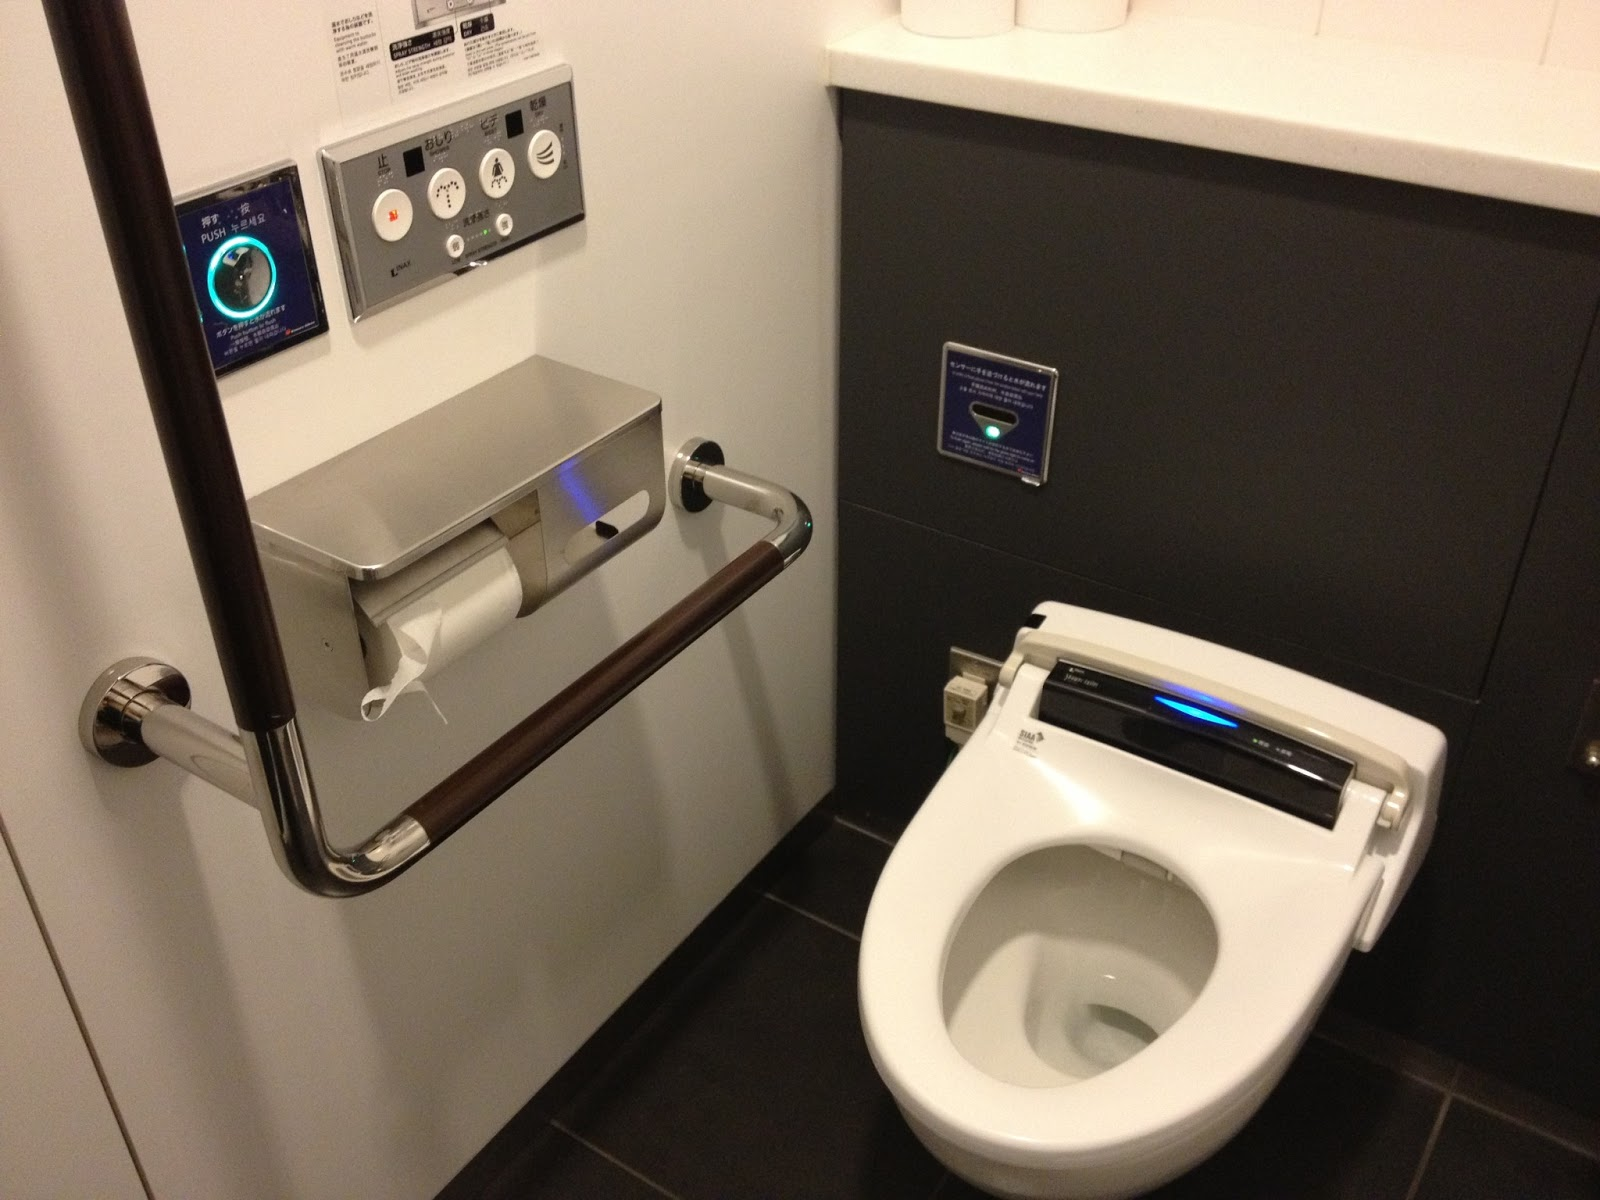 Fancy Toilet Check Out Japanese High Tech Toilets Science Technology